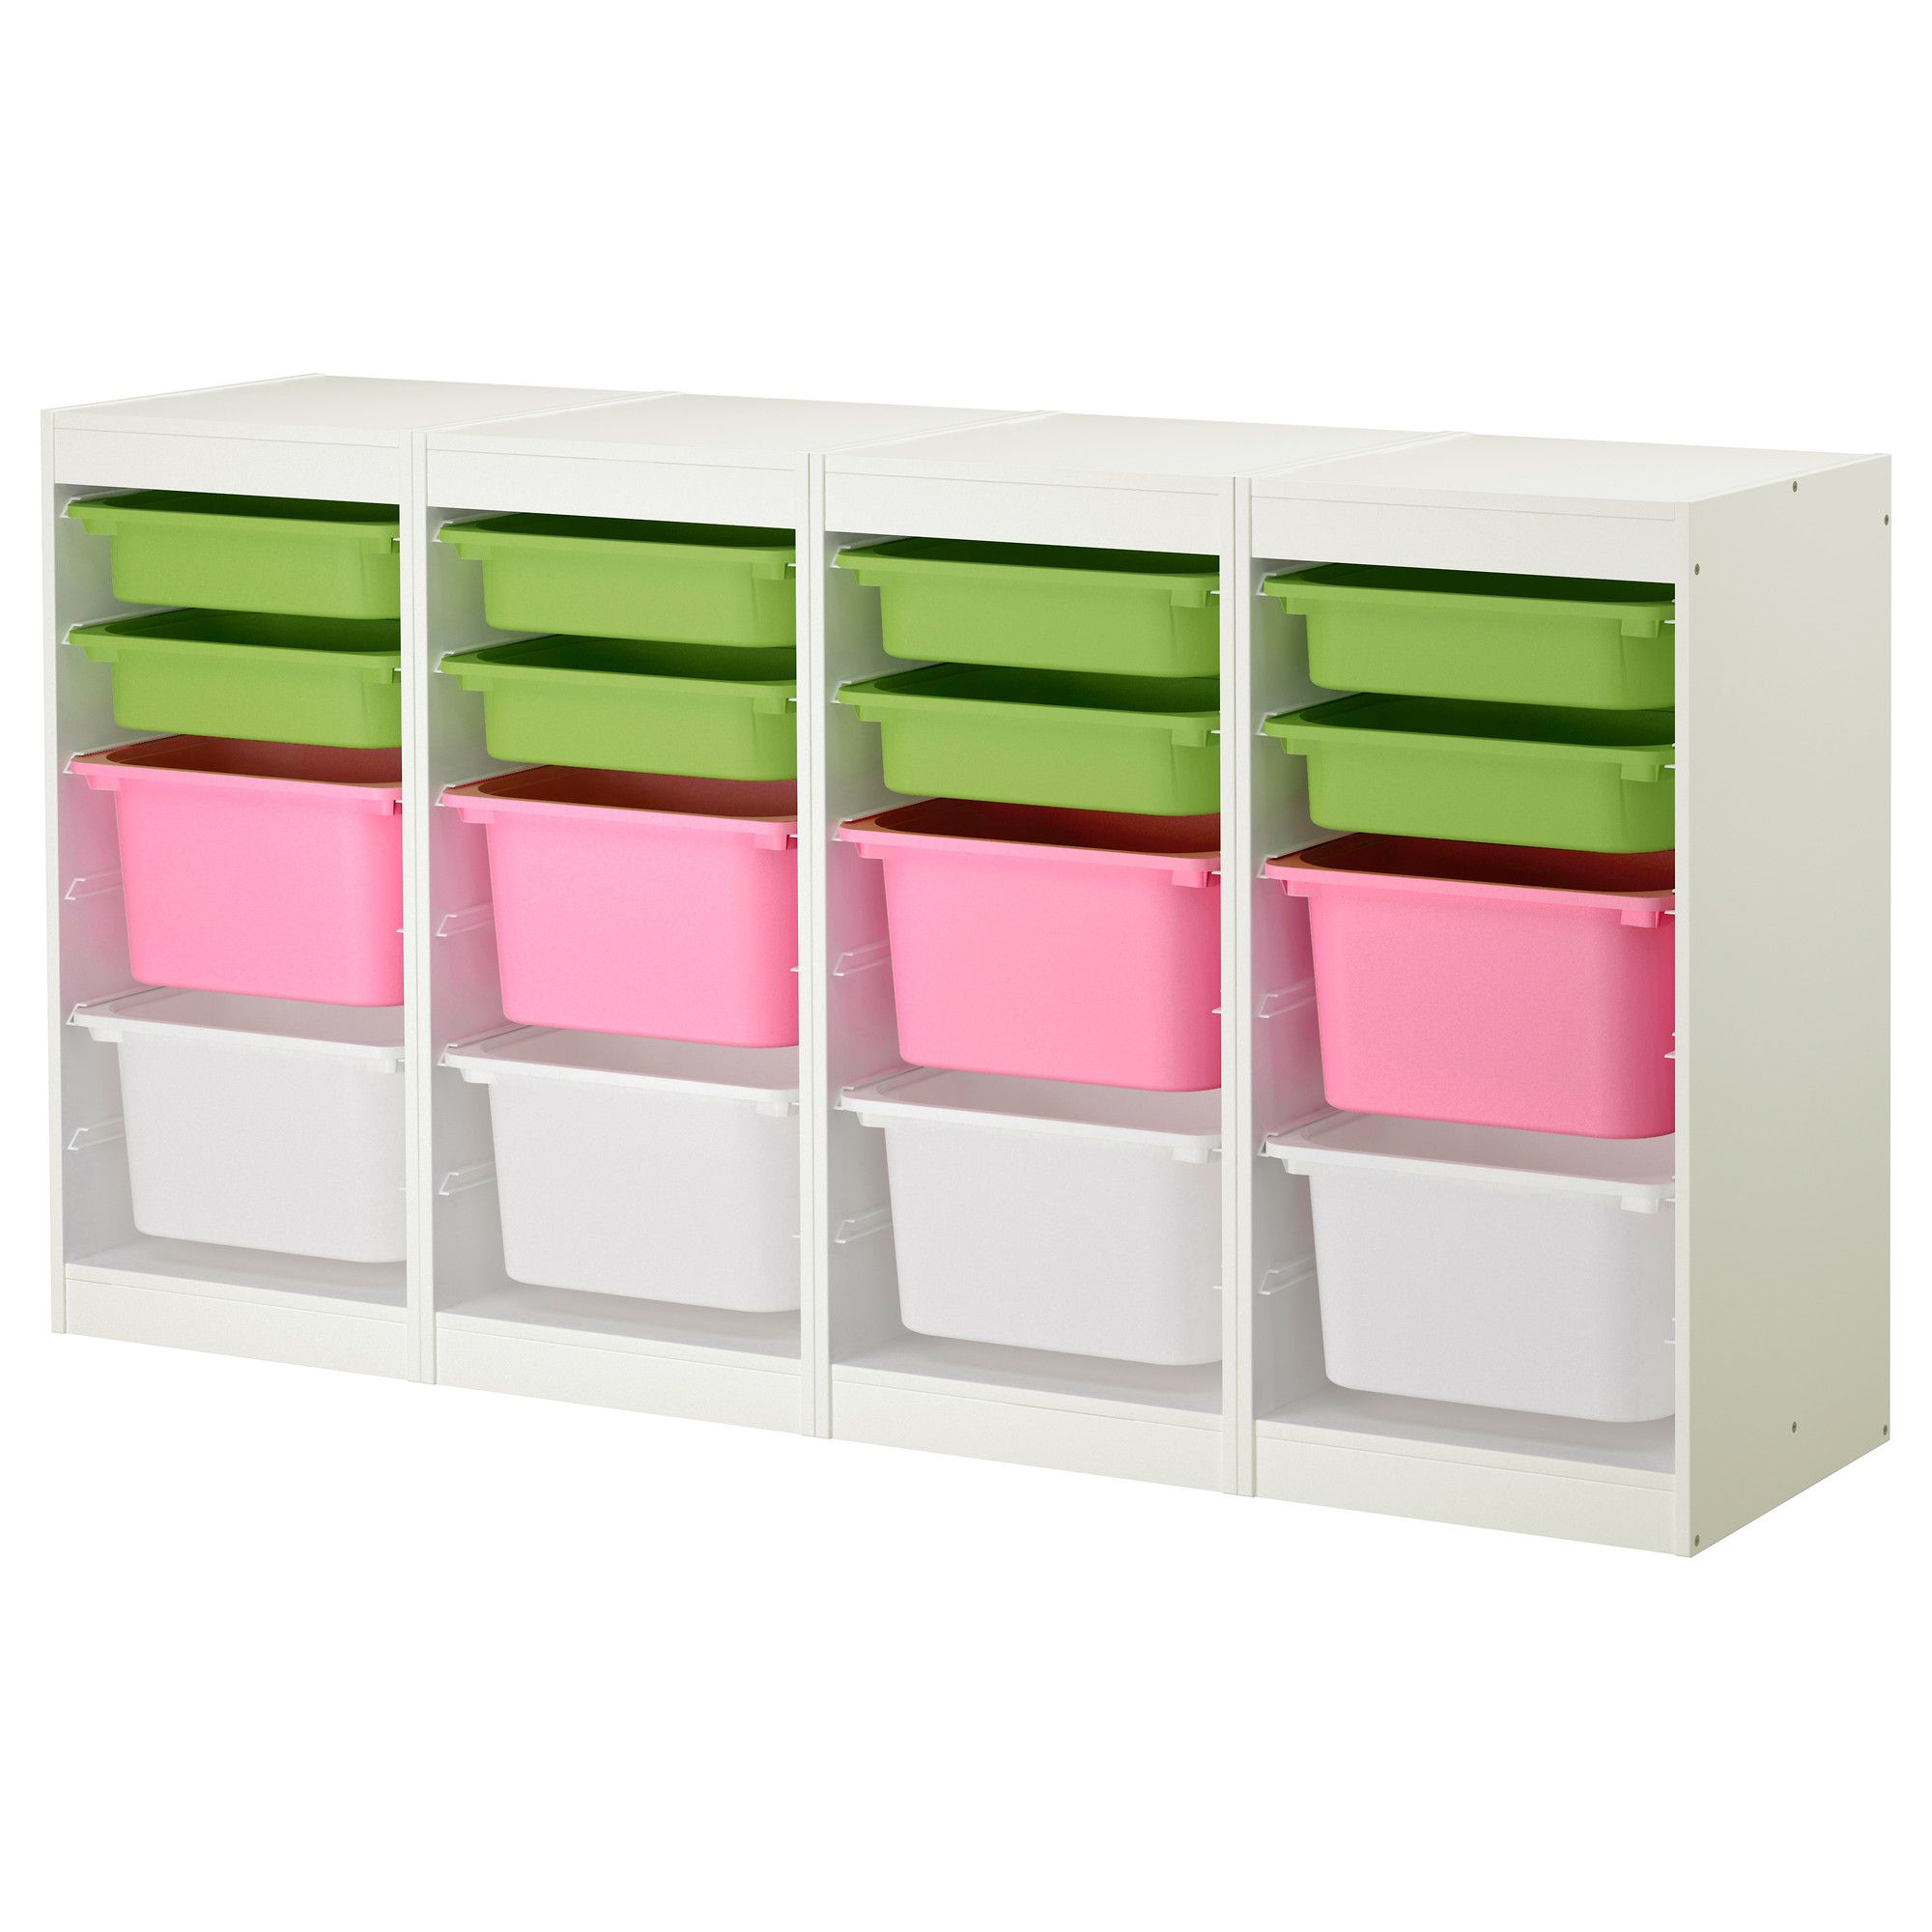 Design Ikea Kids Storage trofast storage combination ikea i have this in both my kids rooms i